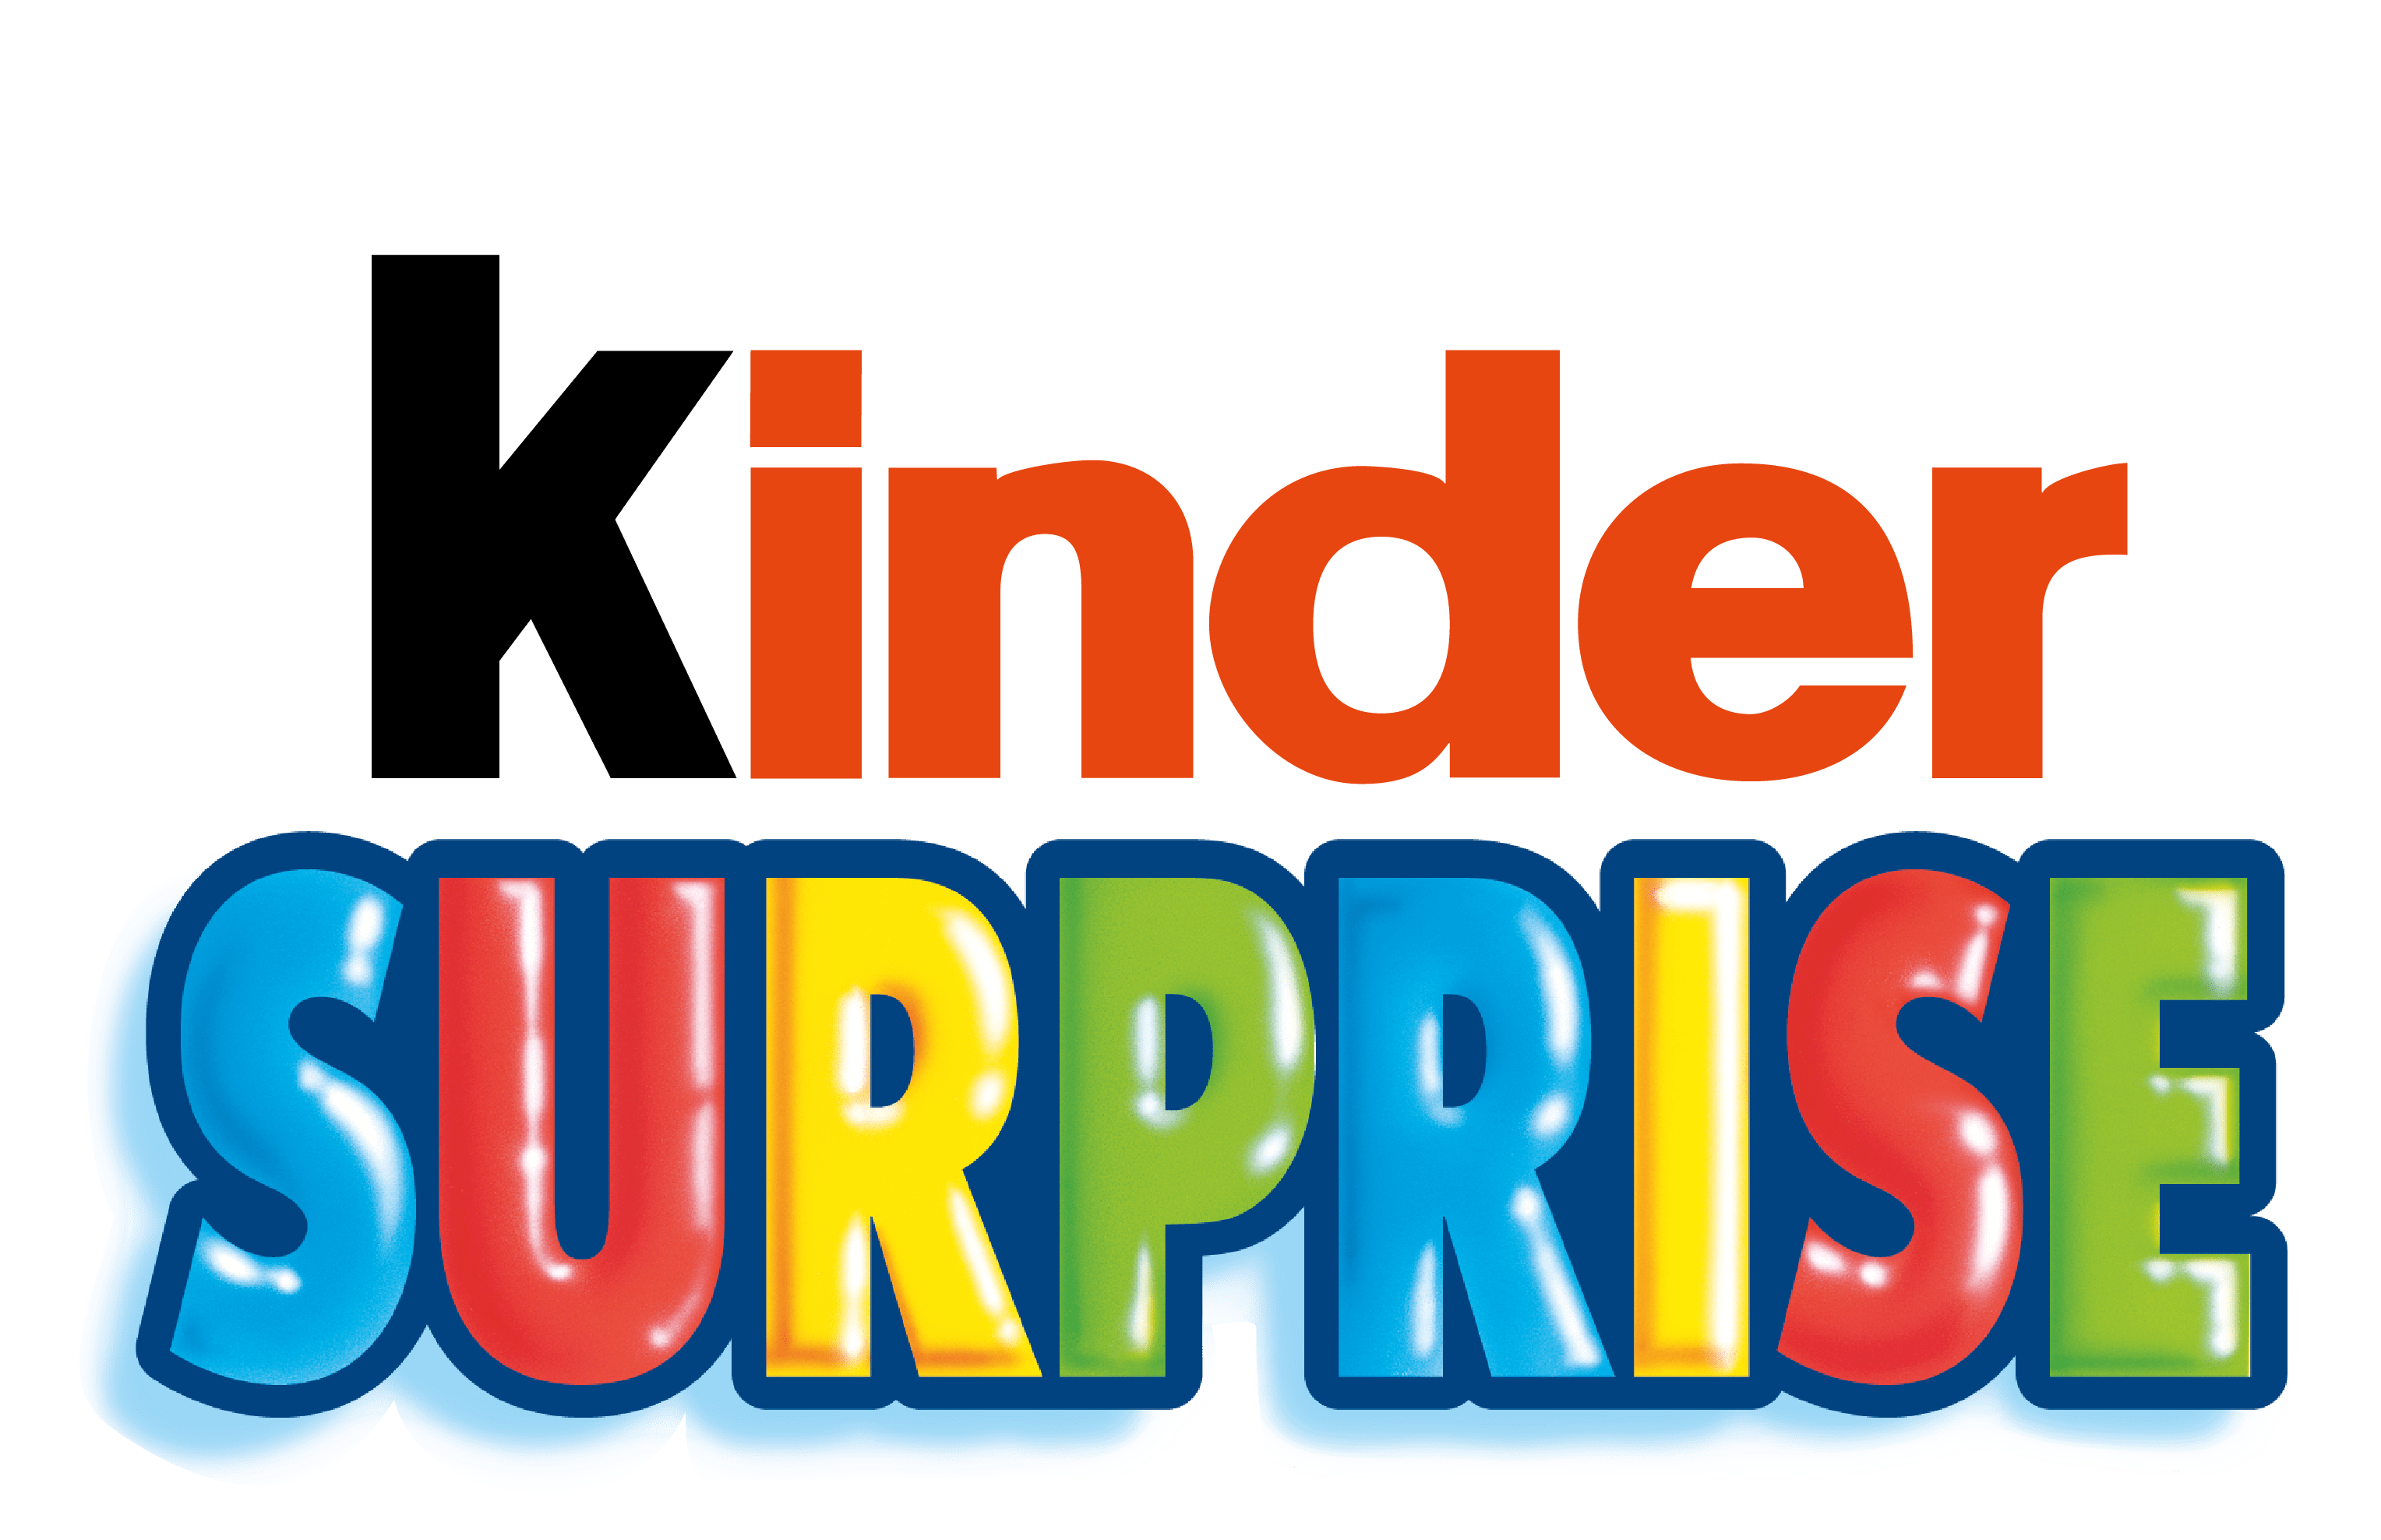 Surprise clipart wow. Kinder logo transparent png